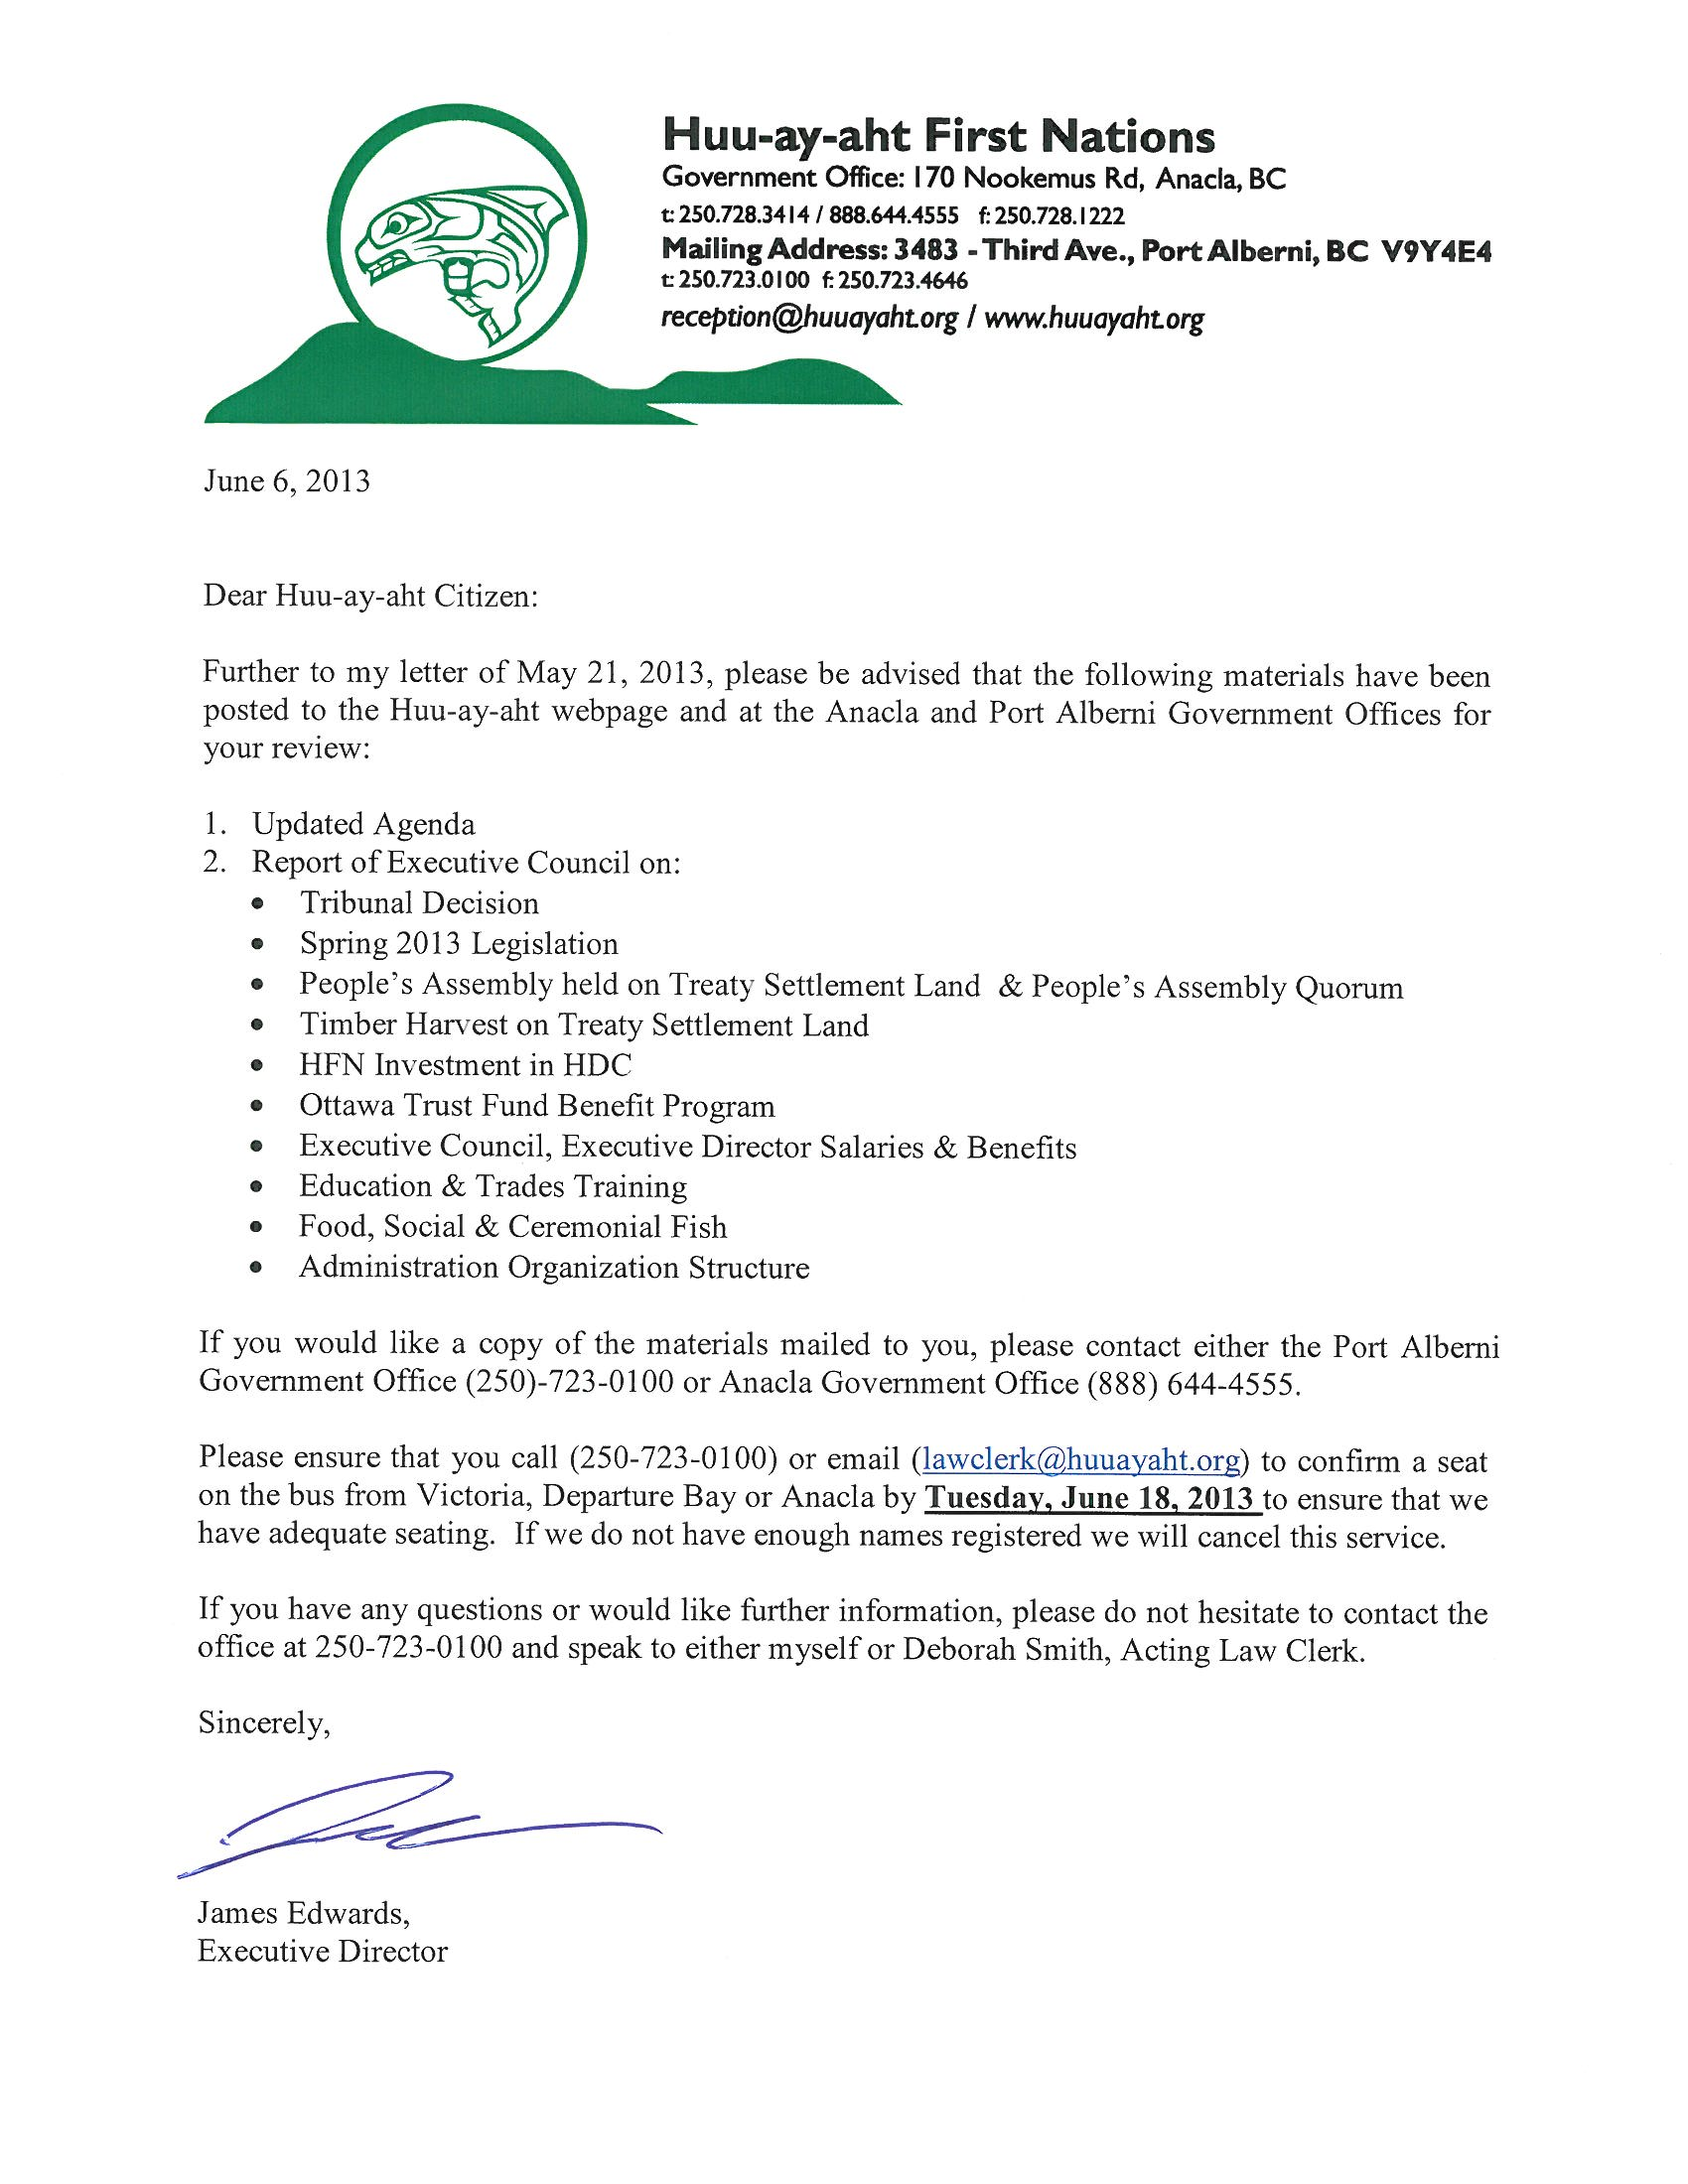 Cover Letter – People\'s Assembly 2013 – Huu-ay-aht